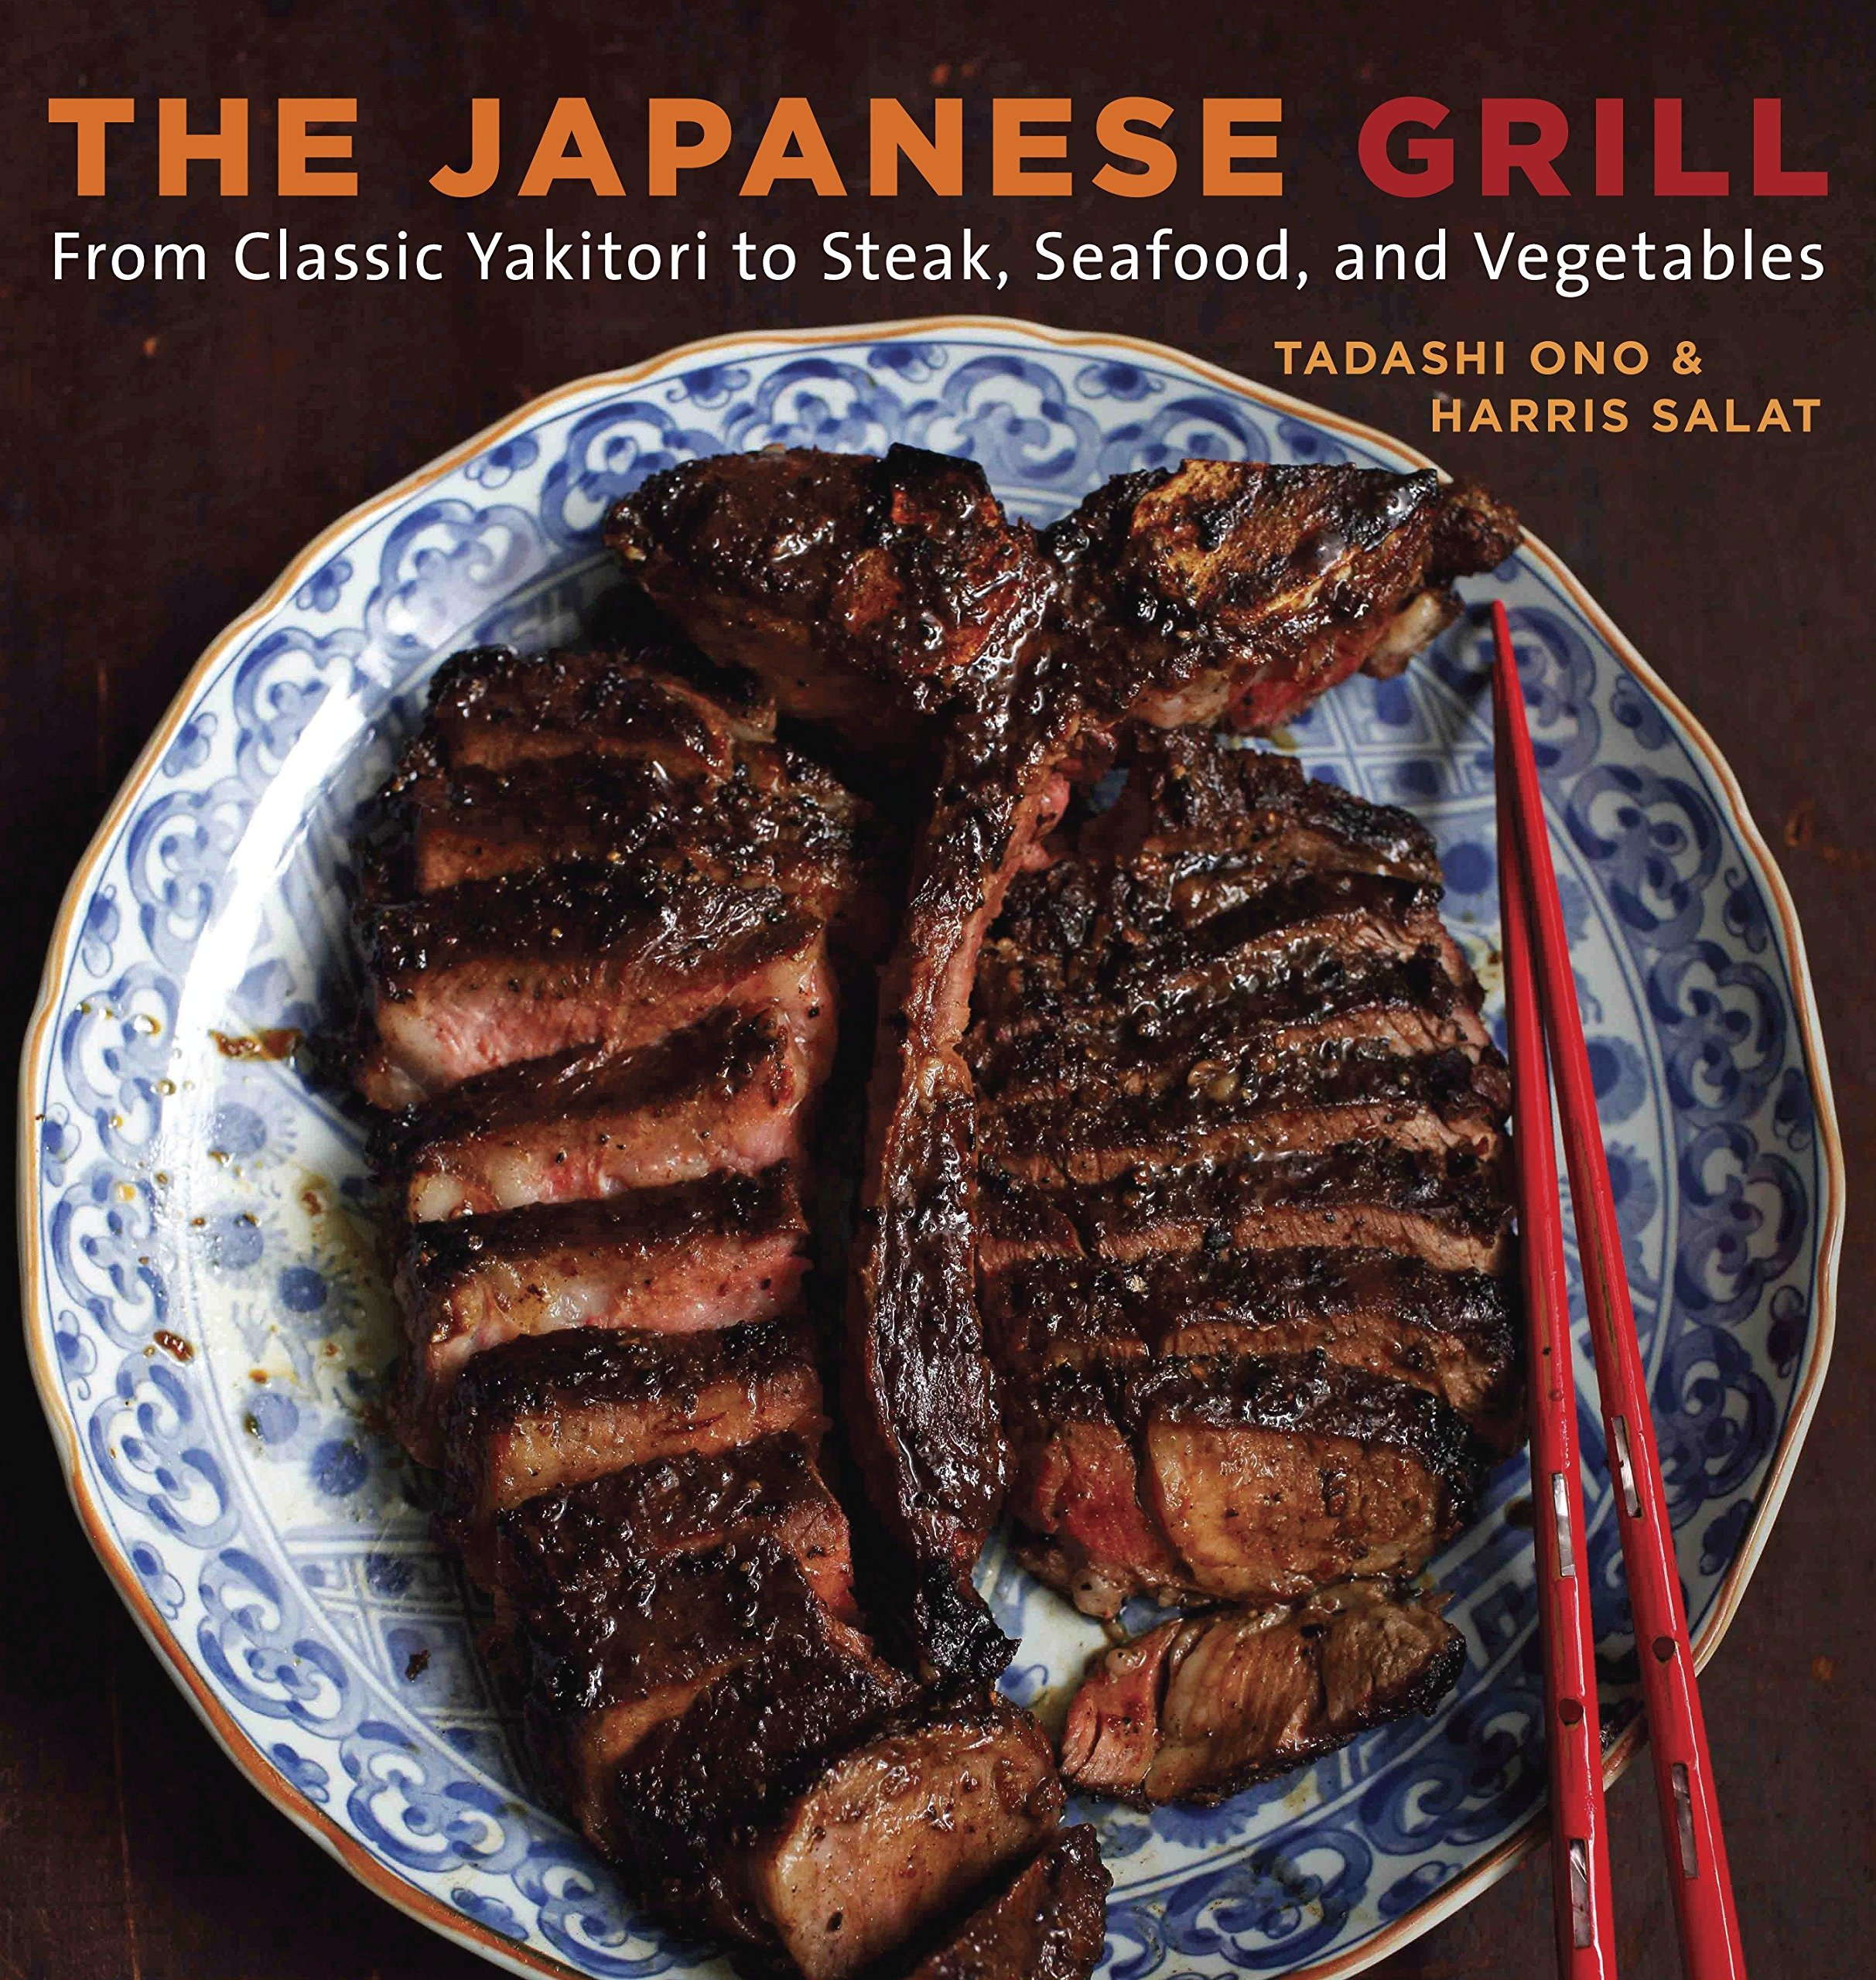 The Japanese Grill: From Classic Yakitori to Steak, Seafood, and Vegetables [A Cookbook] by Ten Speed Press